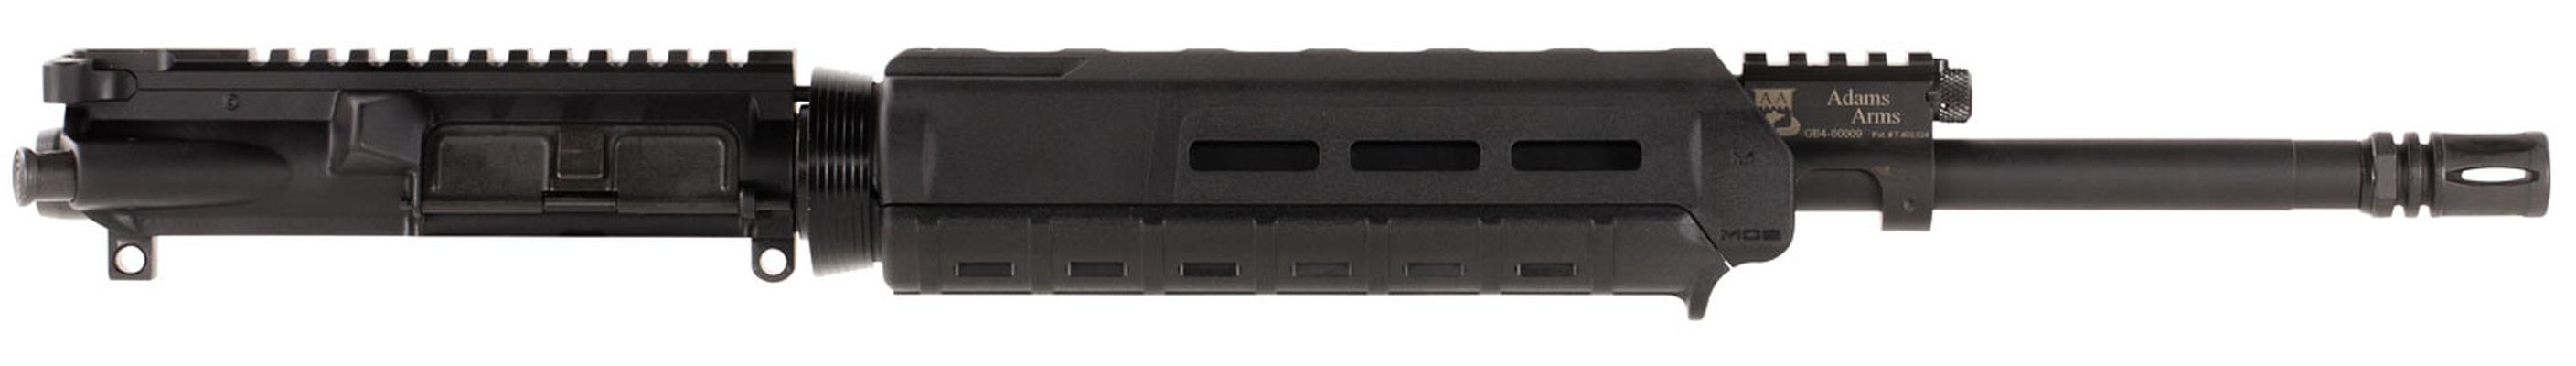 5.56MM P1 UPPER 16IN